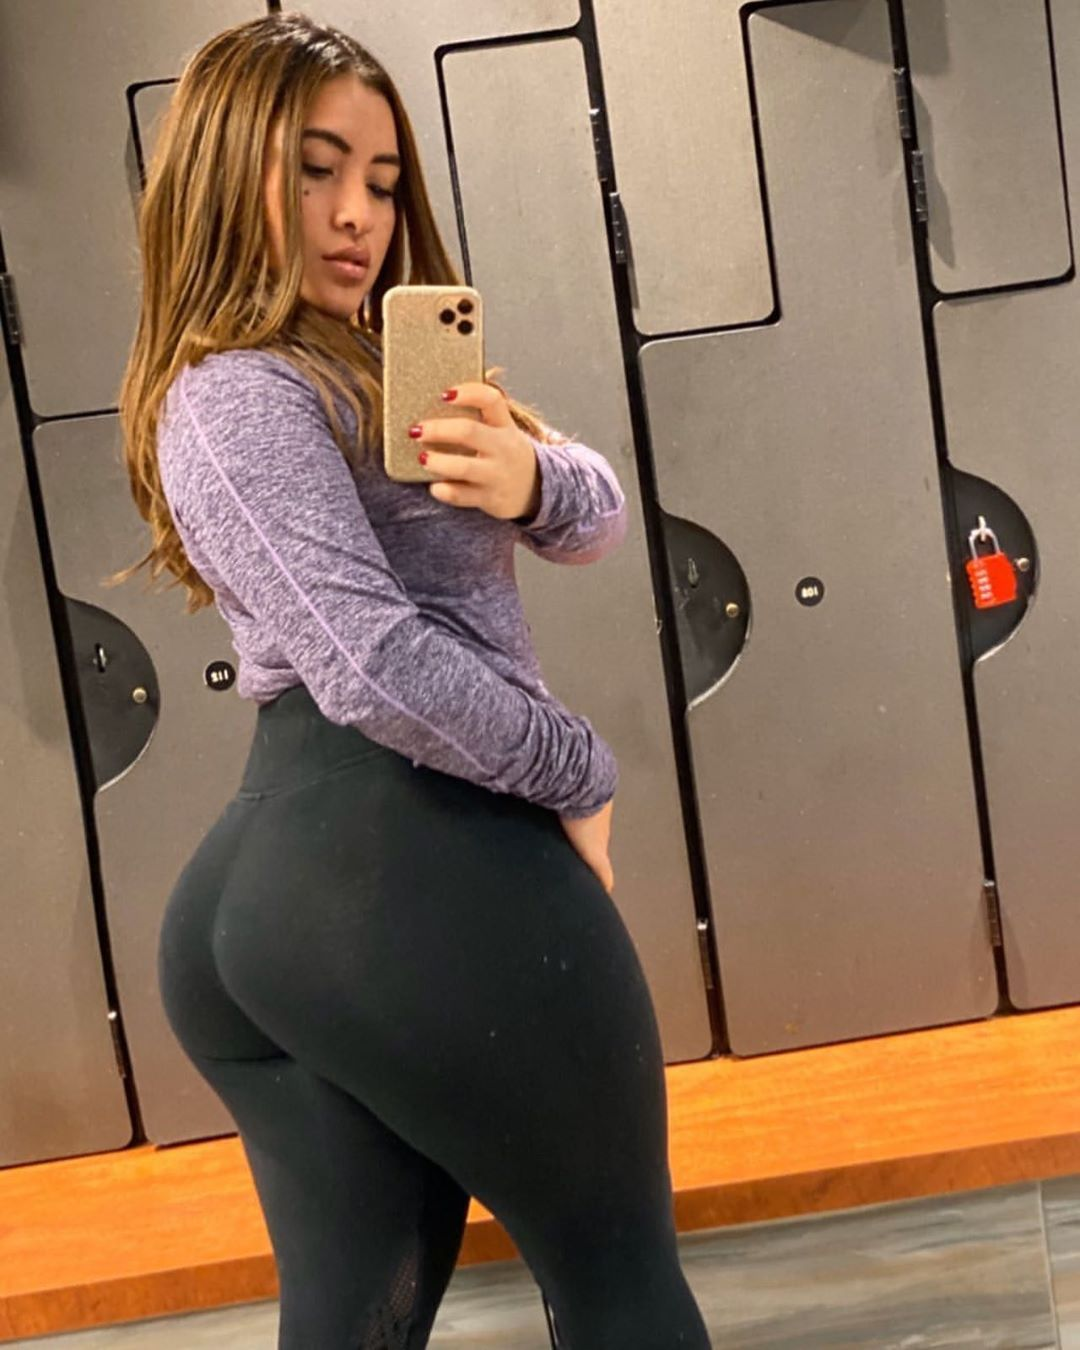 Pin by Chris Redd on Lady o Thick | Selfie tips, Color